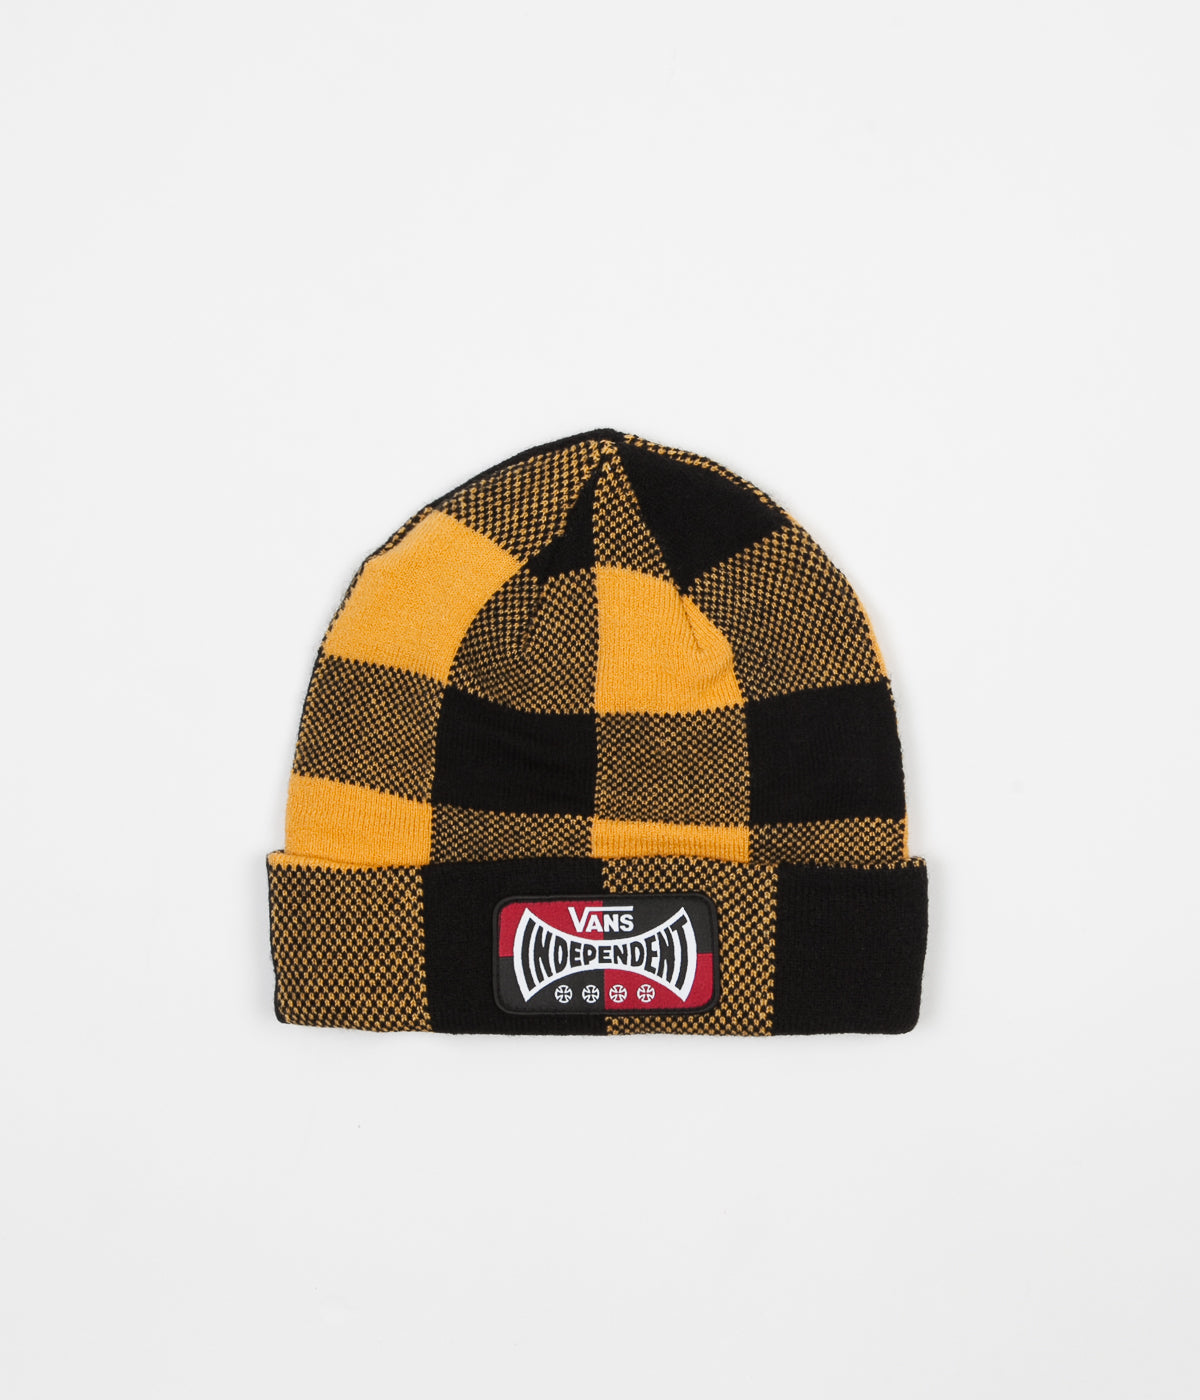 Vans x Independent Check Beanie - Sunflower